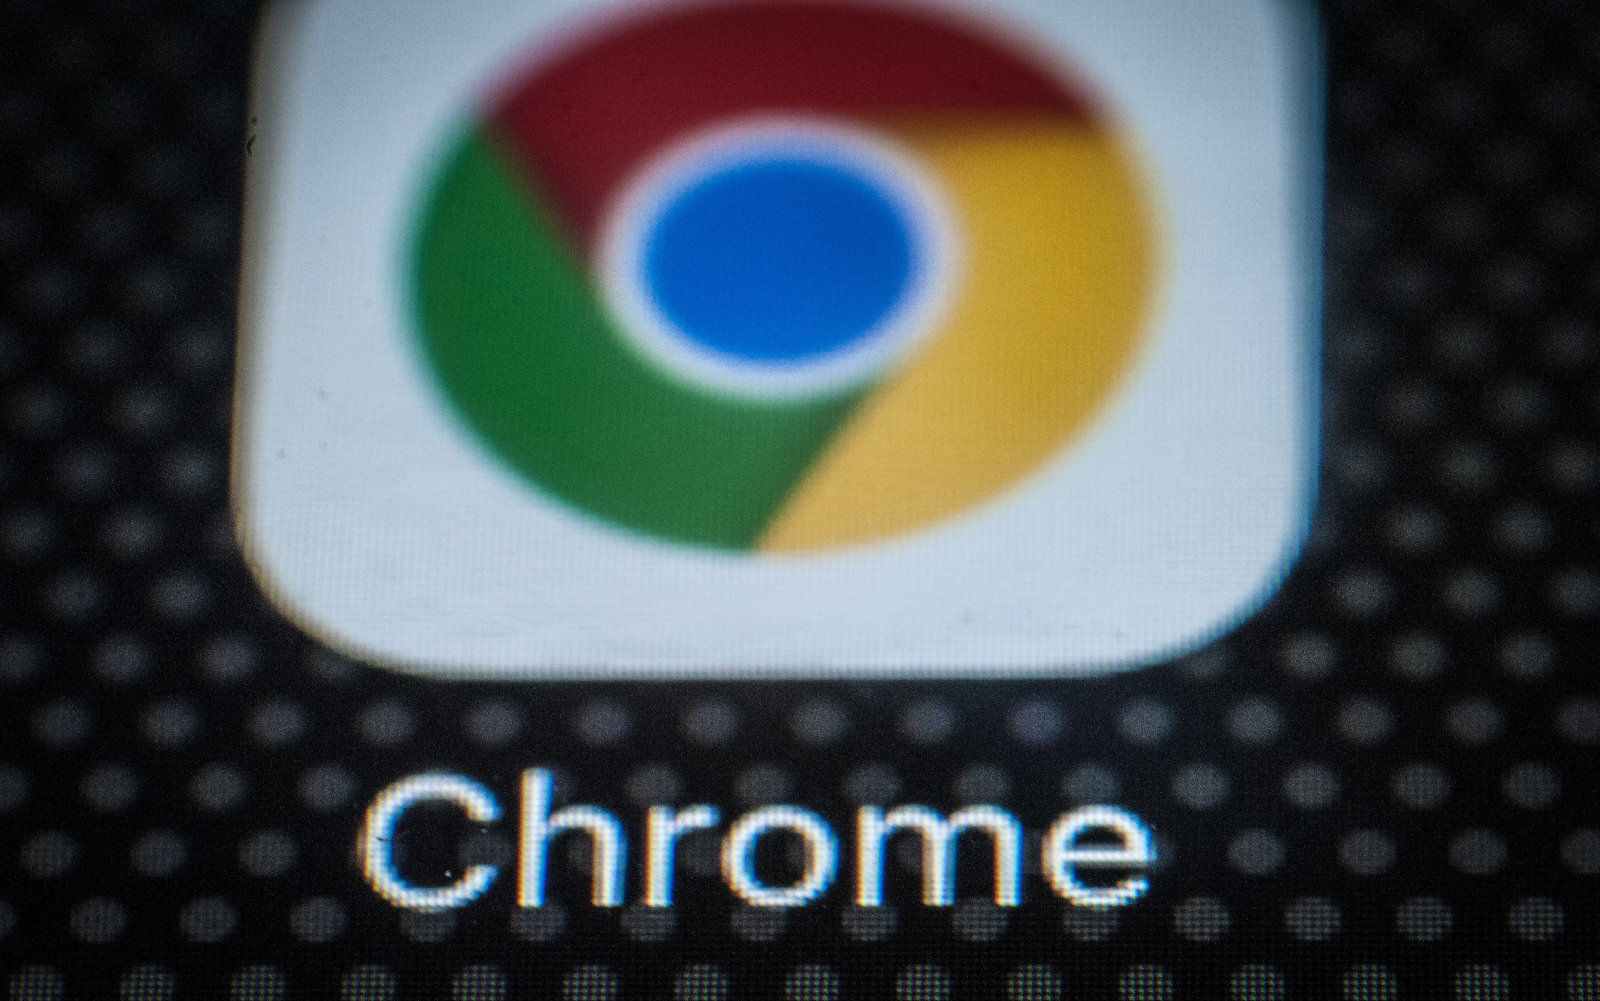 Chrome 74 beta supports dark mode in Windows | DeviceDaily.com